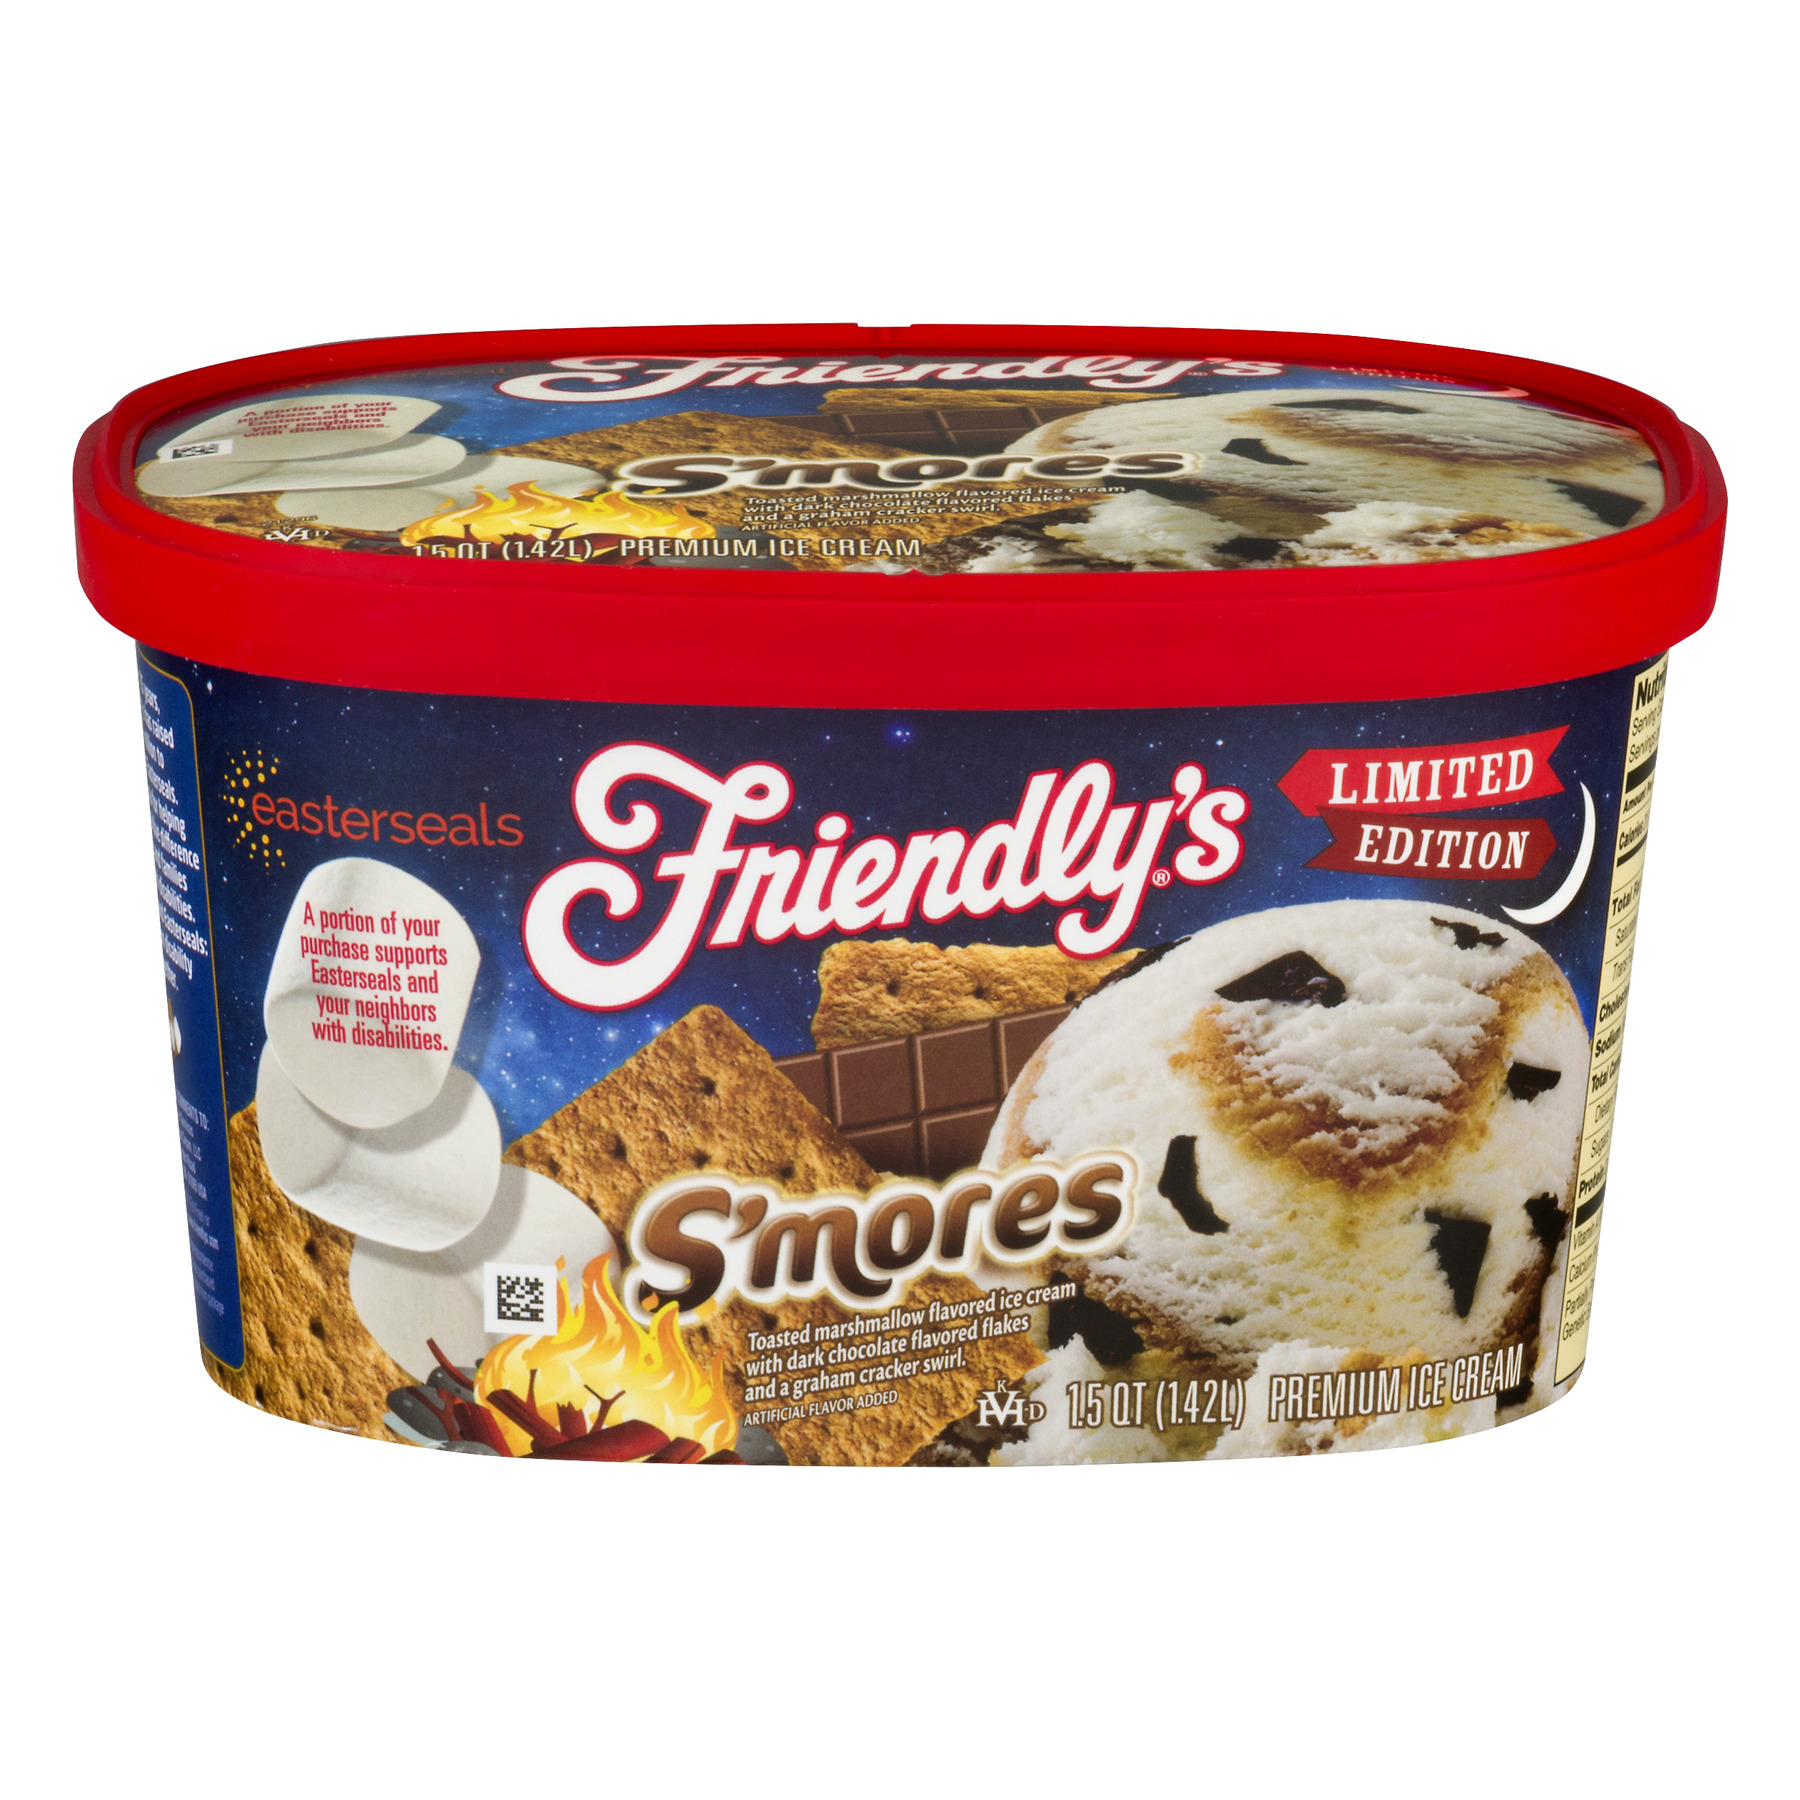 Friendly's Limited Edition S'mores Ice Cream, 1.5 qt